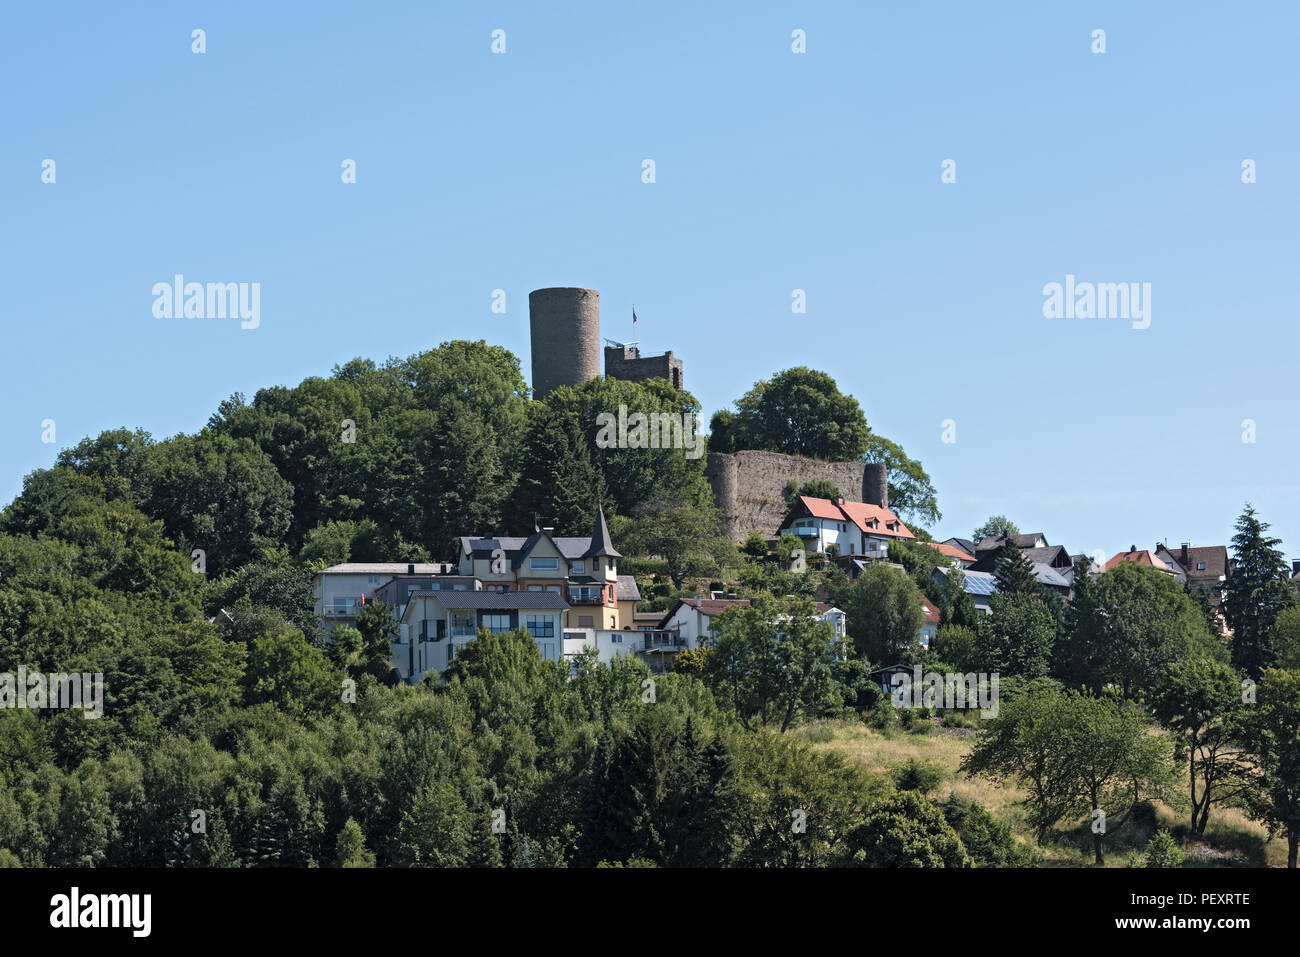 View of the village and the castle ruins Oberreifenberg im Taunus, Germany. Stock Photo